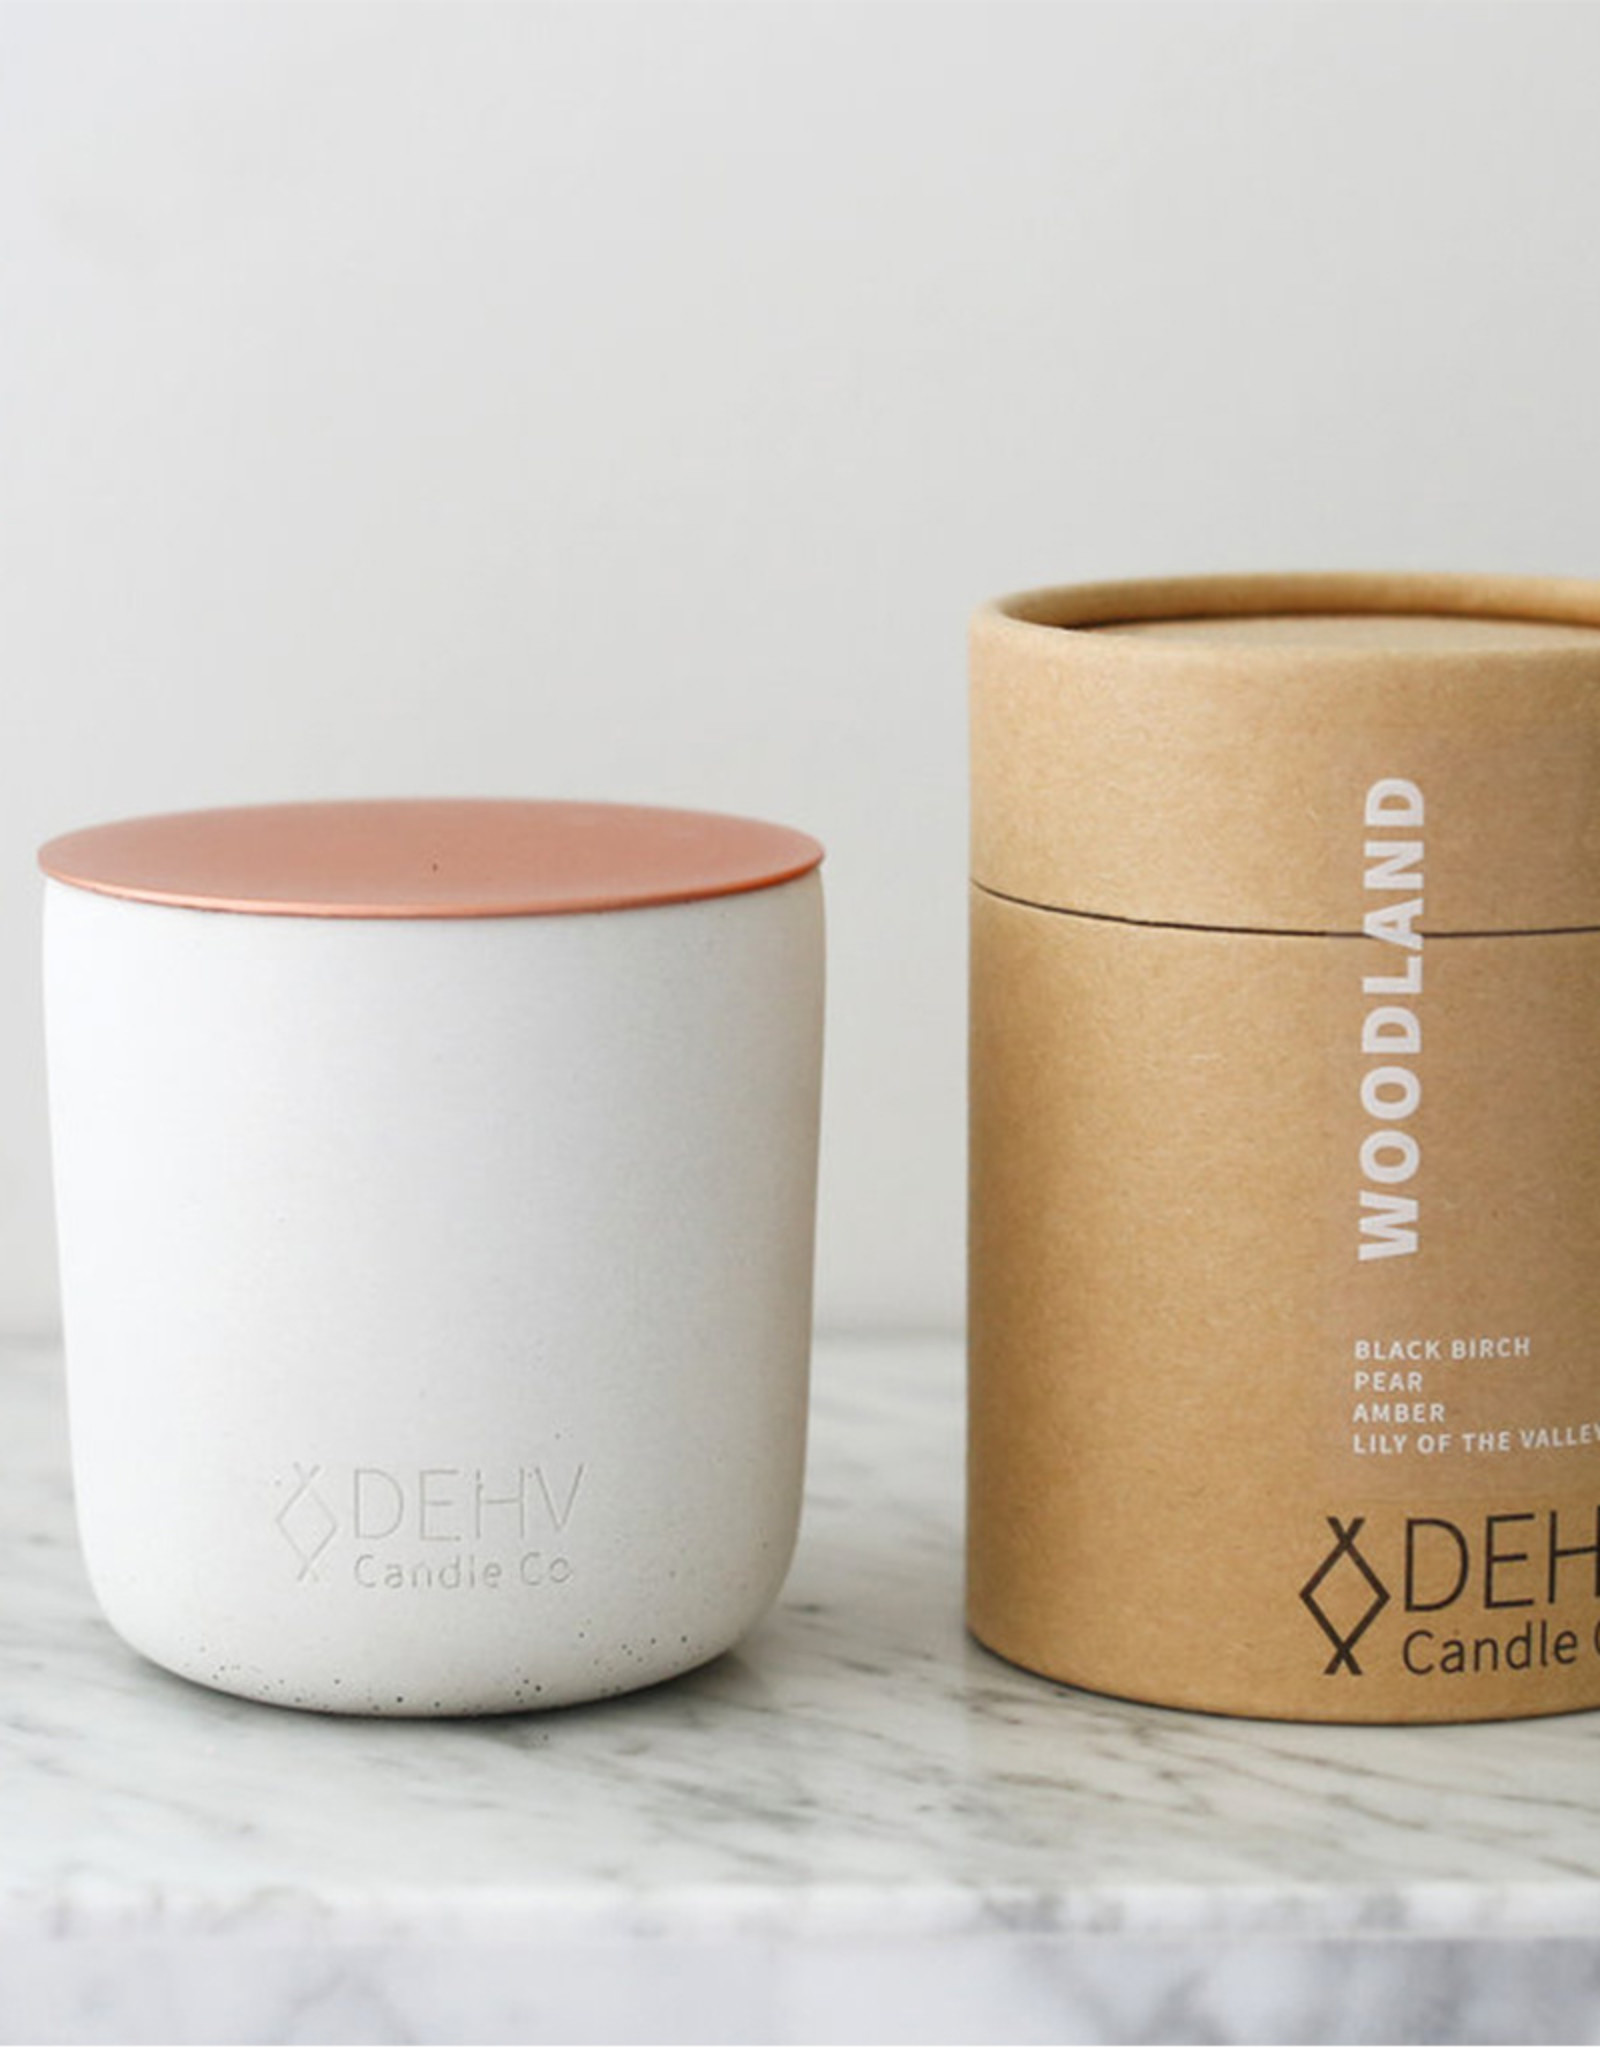 DEHV Candle Co. WOODLAND soy candle